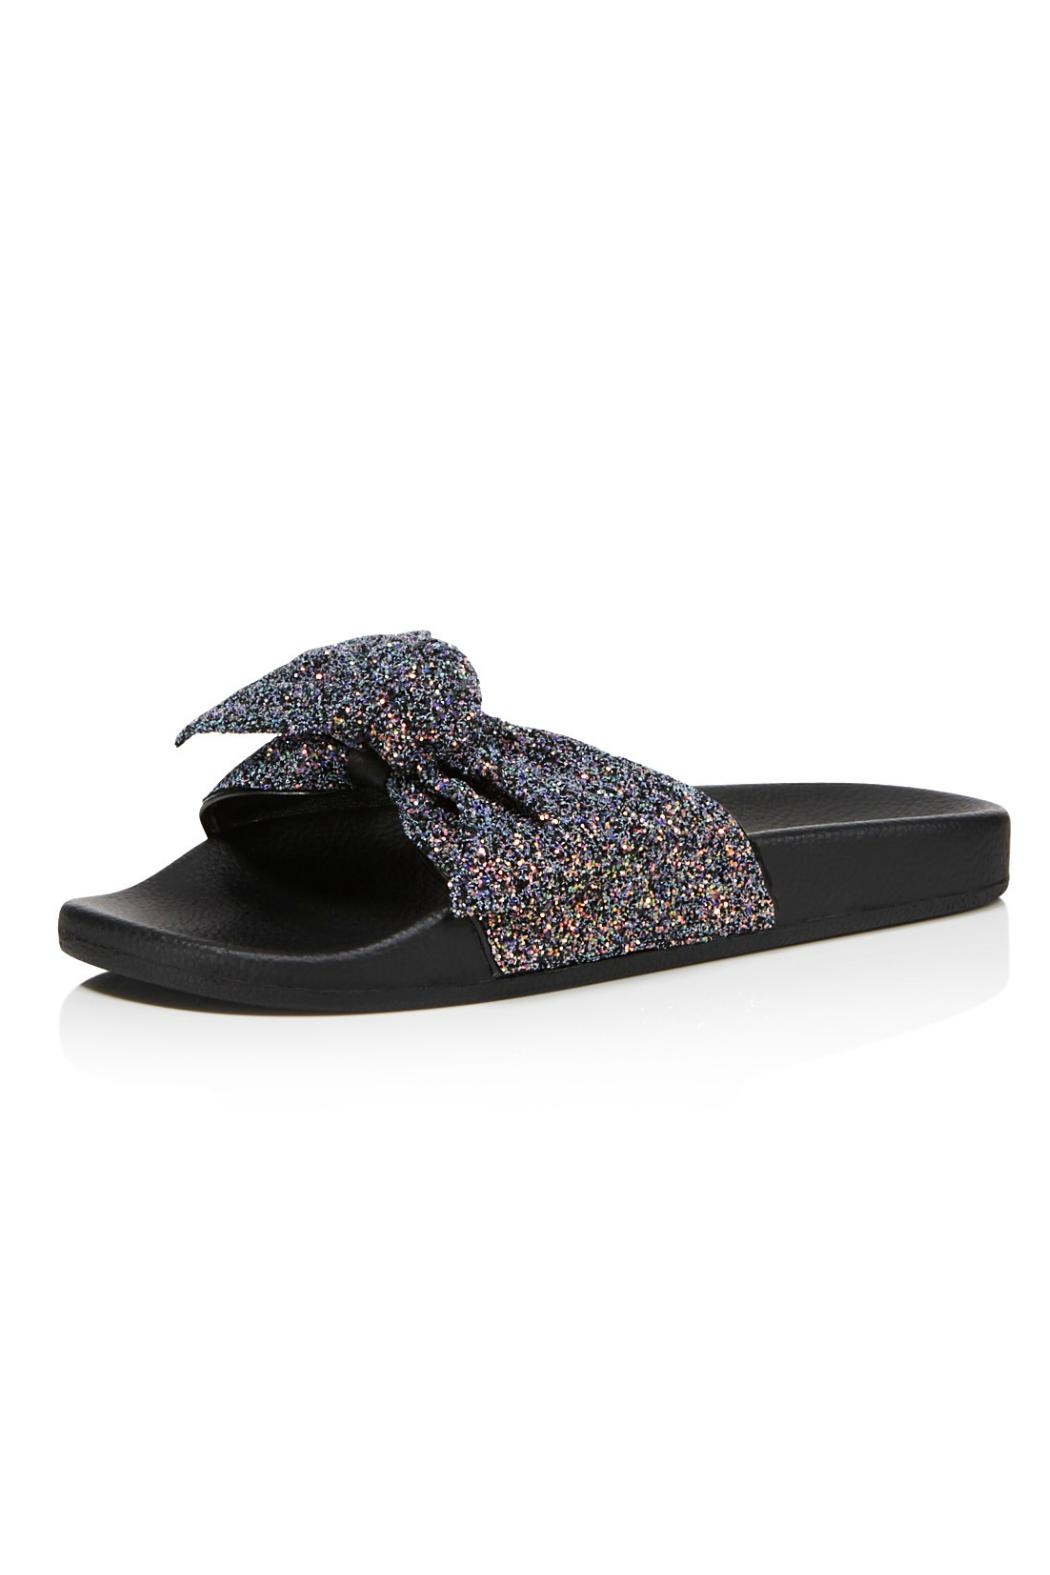 Kate Spade New York Shellie Pool-Side Slide - Front Cropped Image